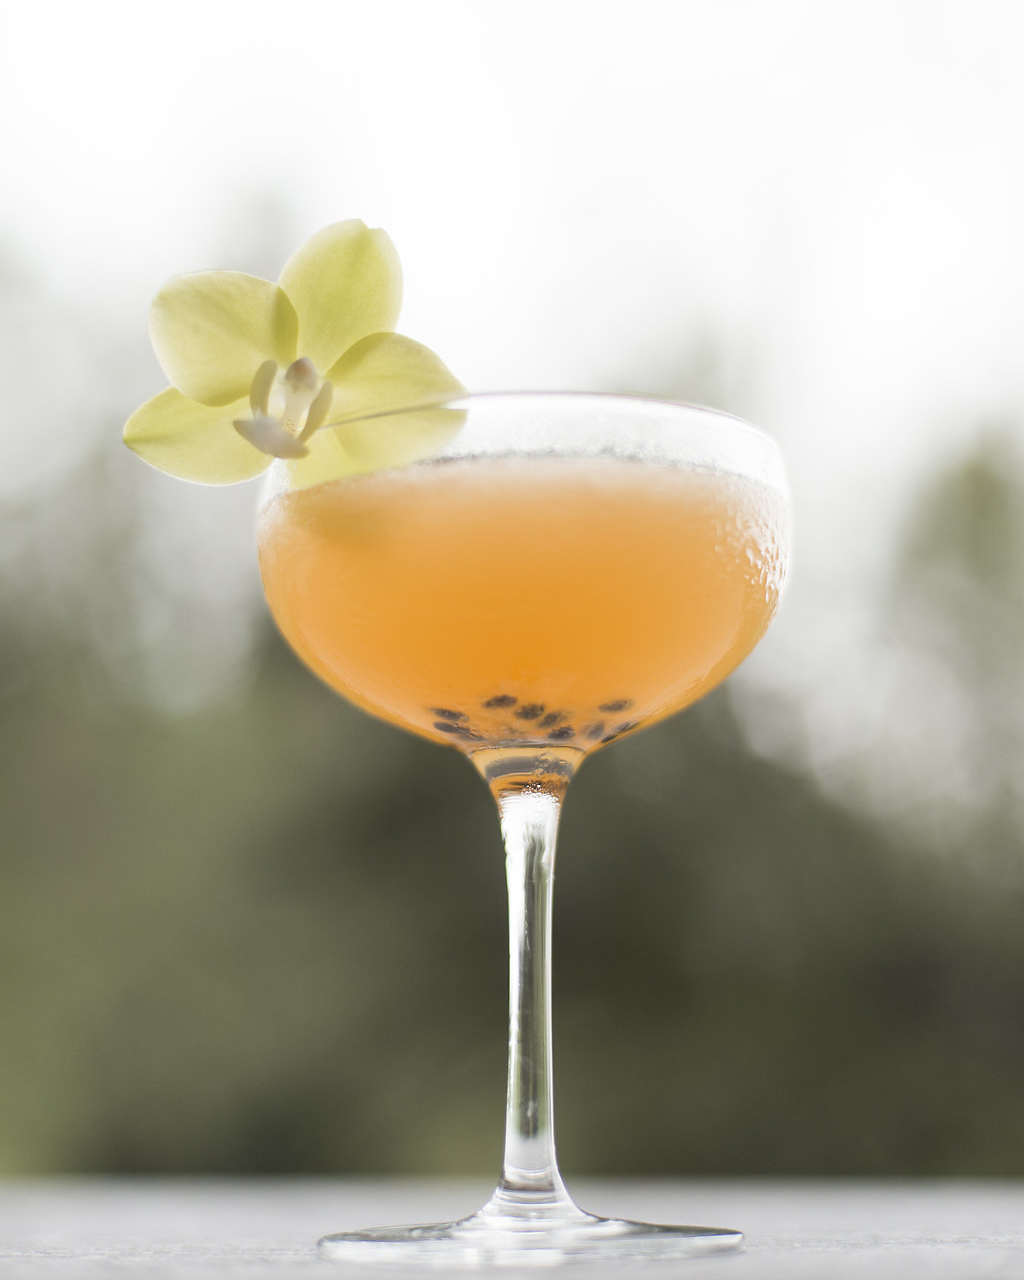 PASSION LOVE    lilikoi, fresh pressed lime, house cranberry syrup, vodka